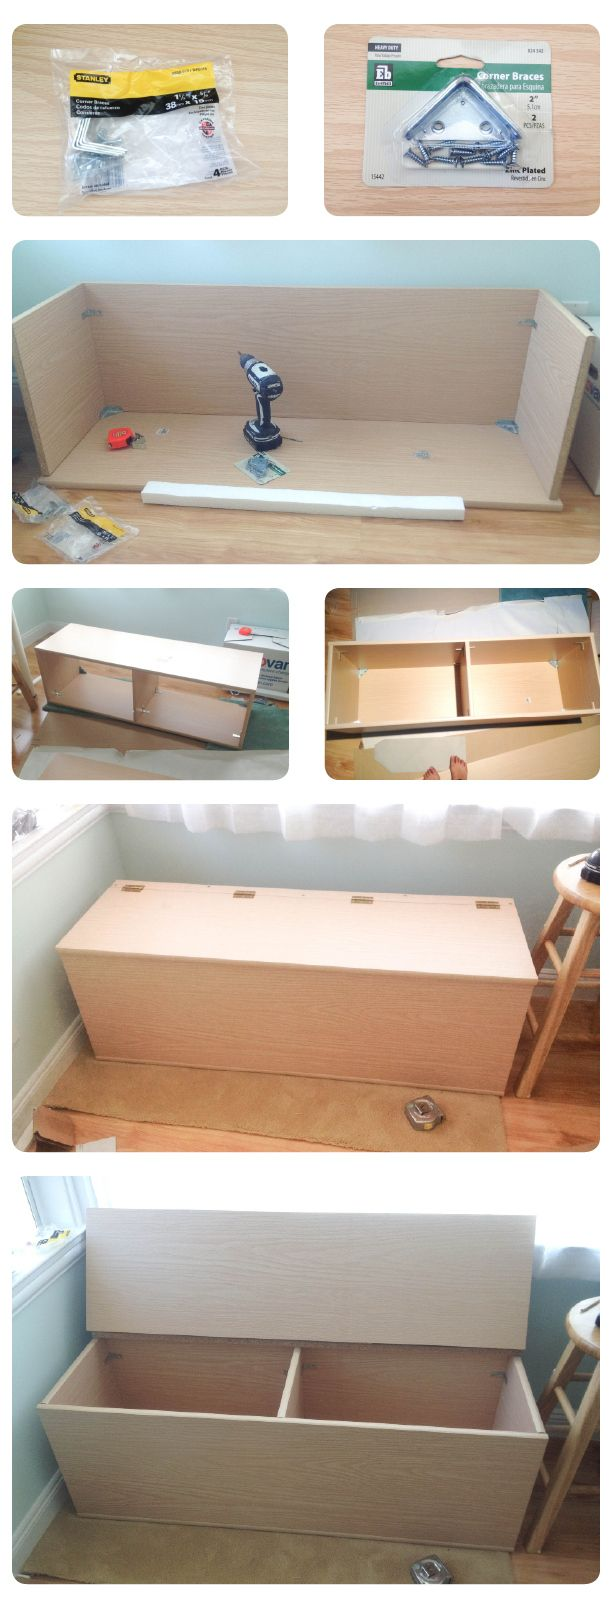 Simple tutorial on building a storage bench. Could possibly modified for dining banquette or storage for pool supplies? Use outdoor fabric to cover top for beauty, comfort and storage!